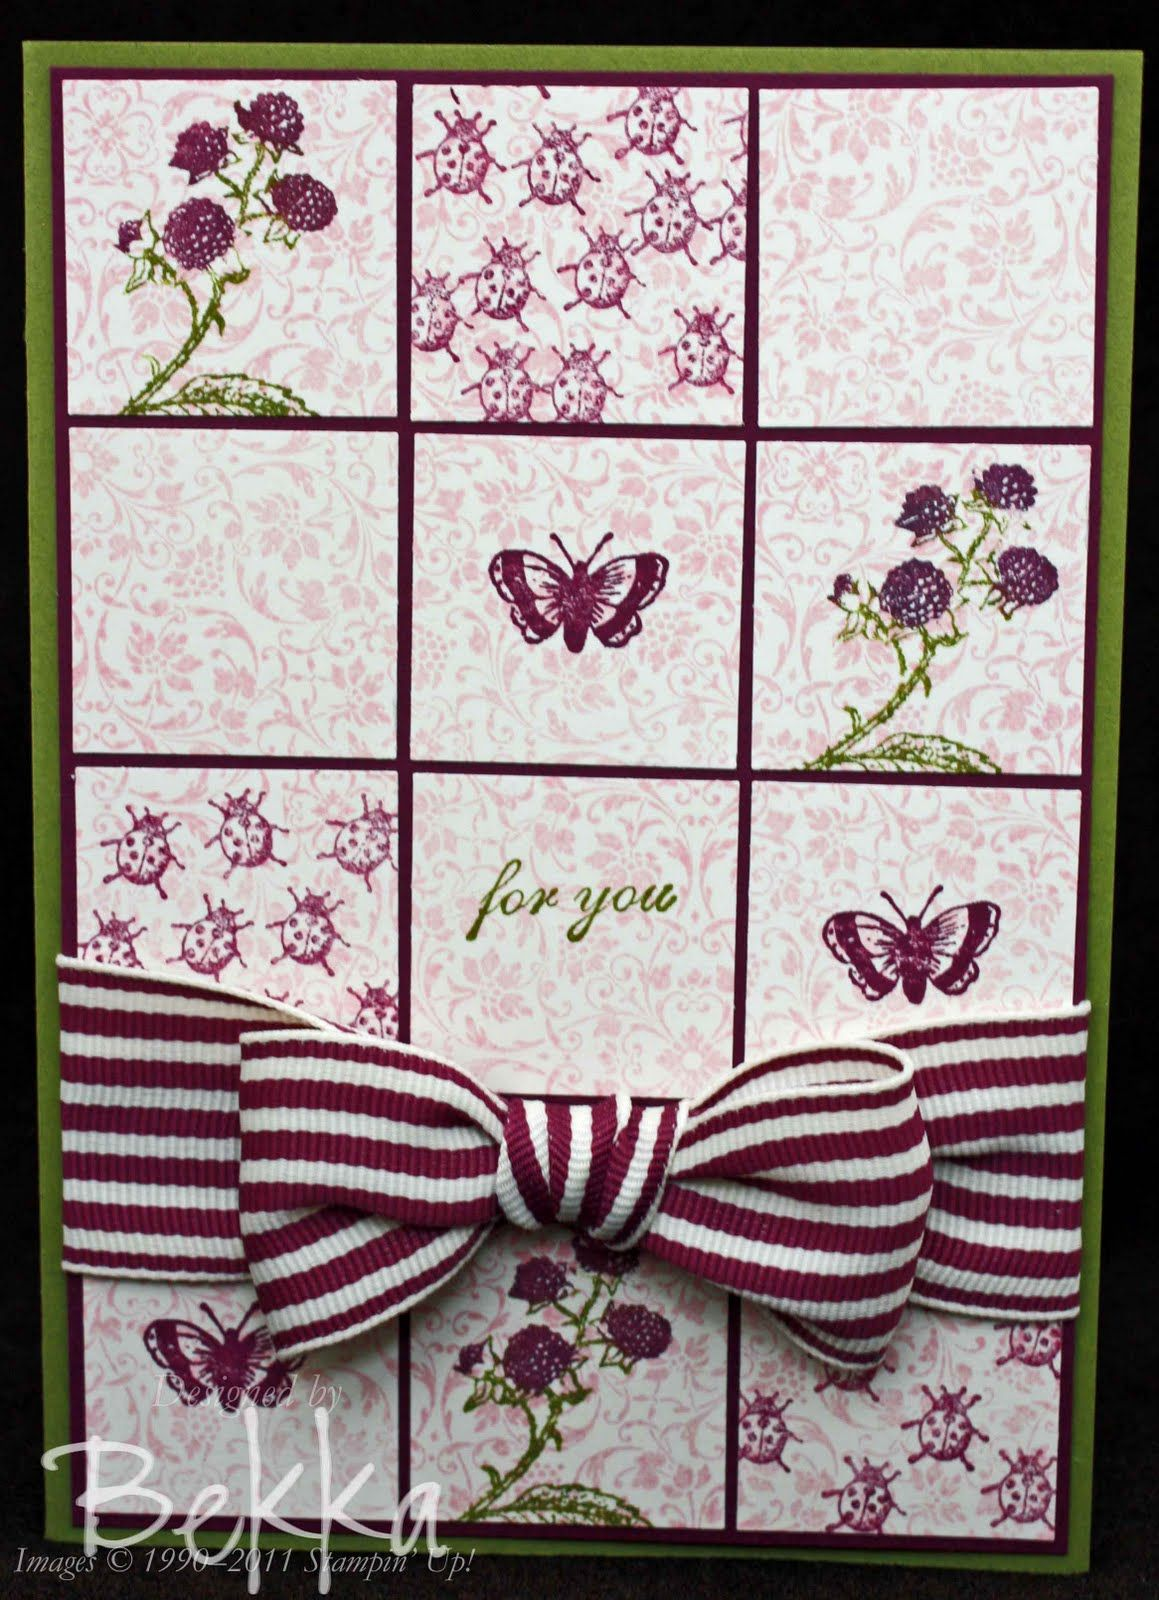 Clearly for You Rich Razzleberry  Card by Bekka Prideaux from Feeling Crafty